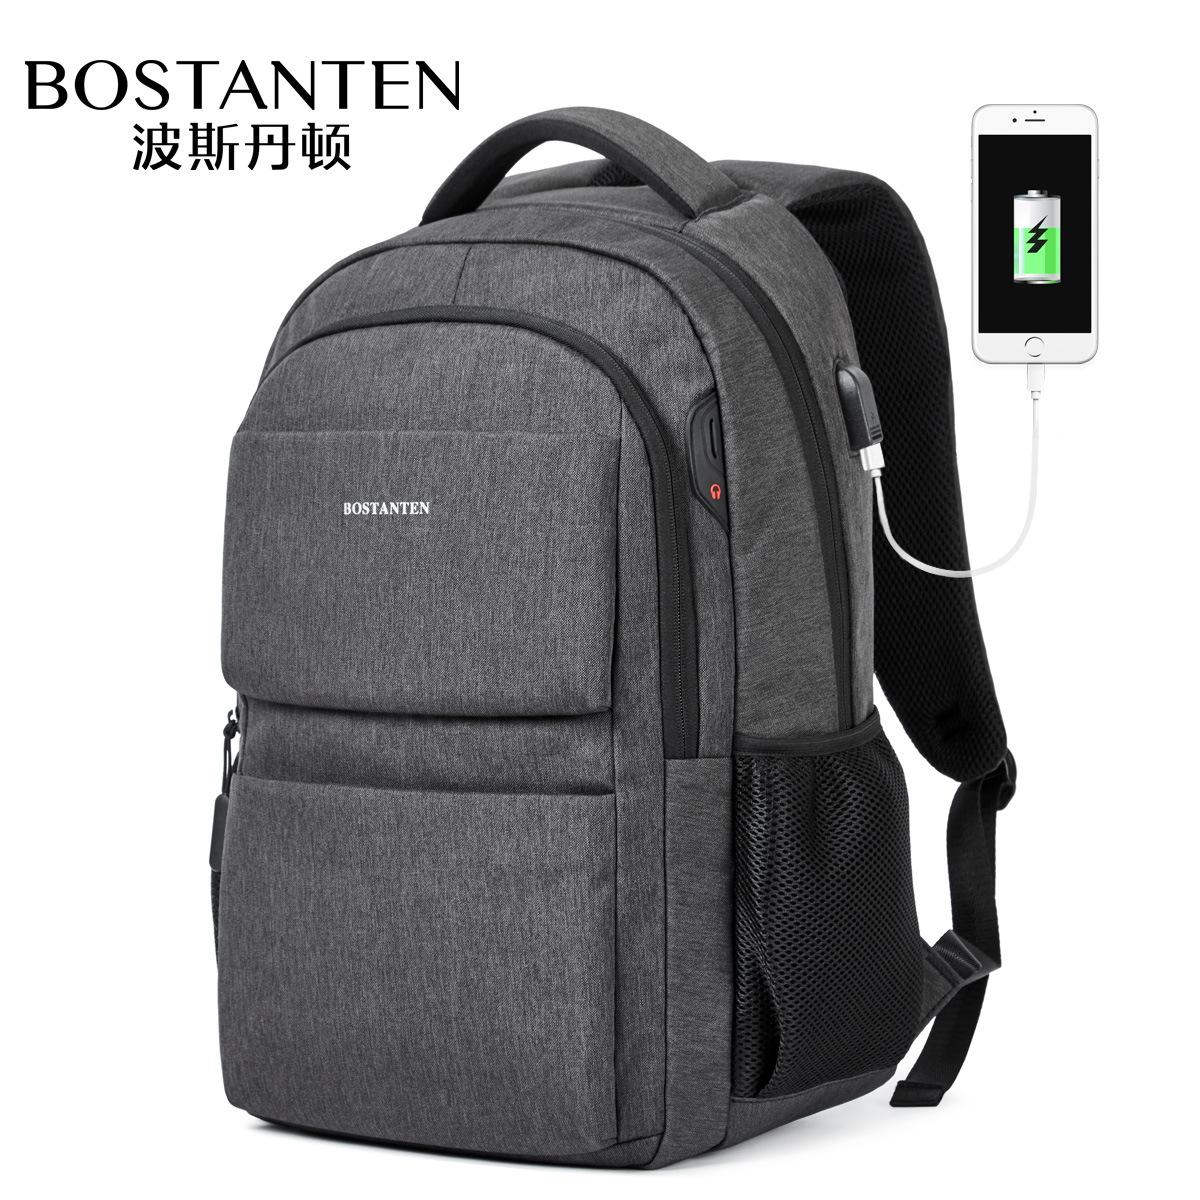 Bostanton new style sewing mens fashion backpack schoolbag business computer bag leisure multipurpose bag